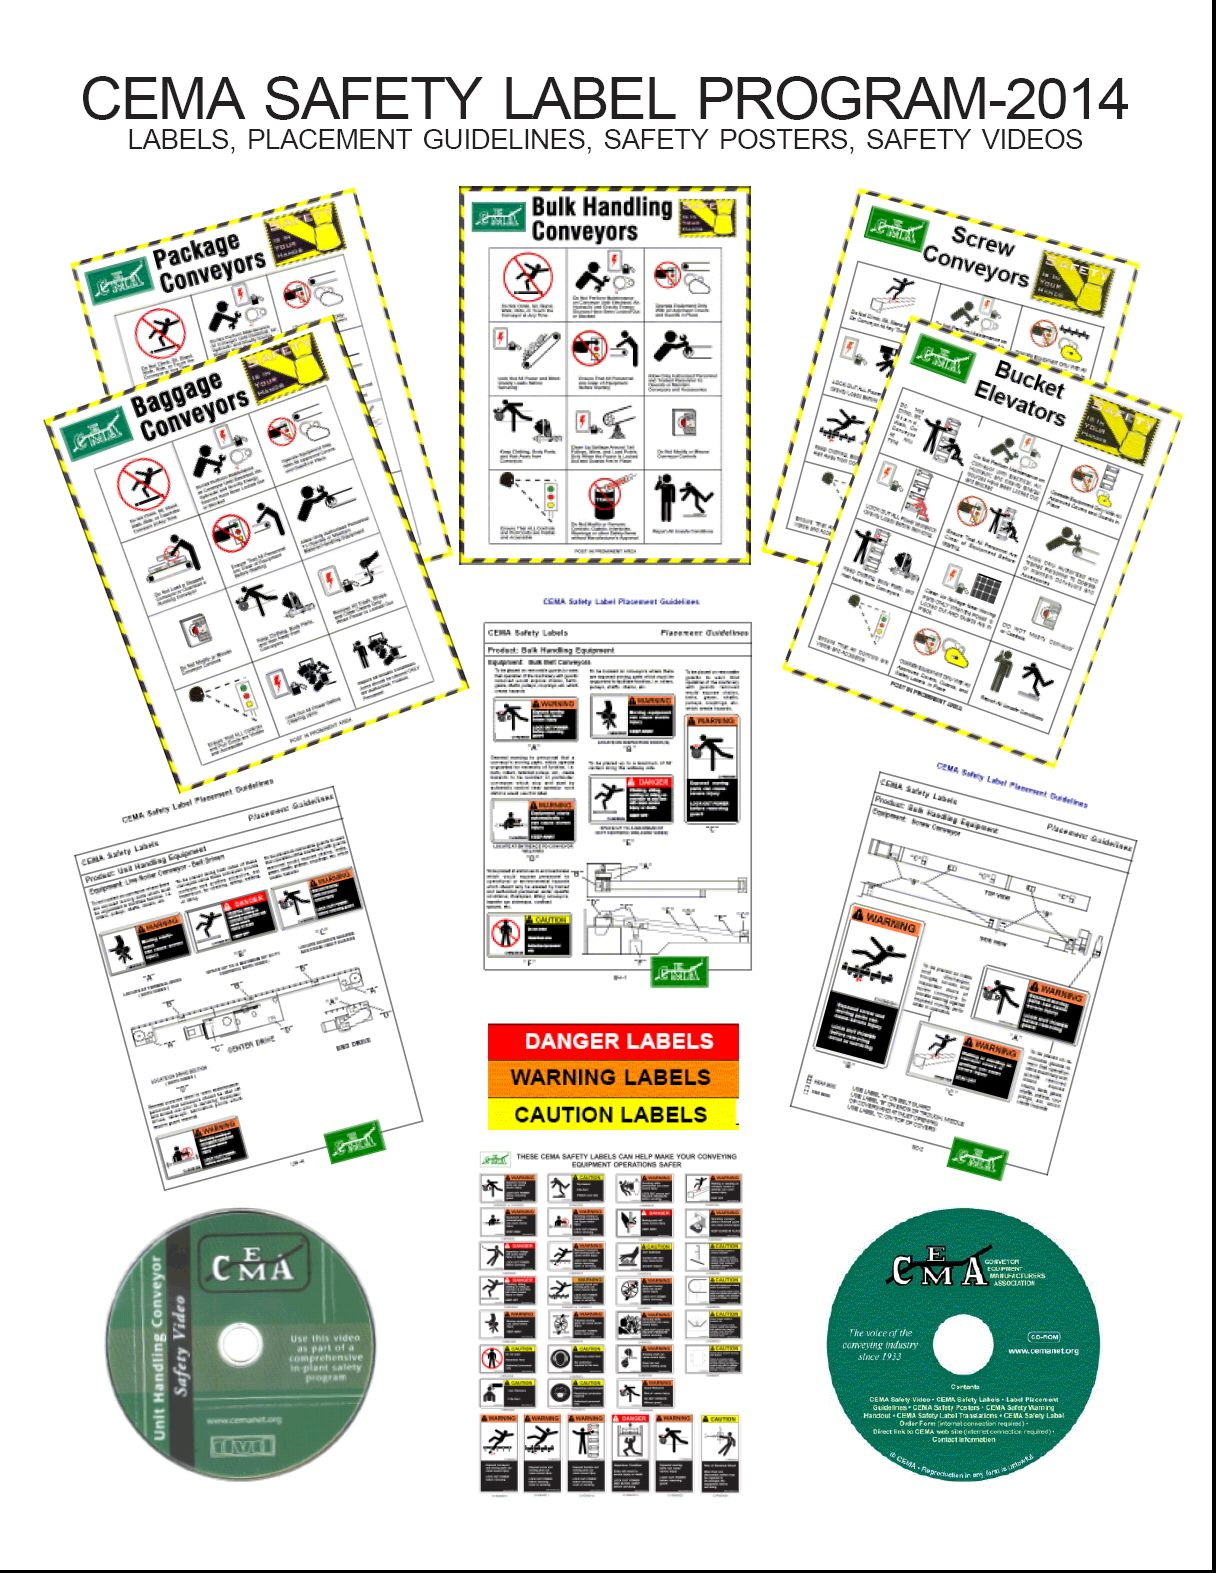 safety, safety labels, publications, safety posters, cema, bulk handling, unit handling